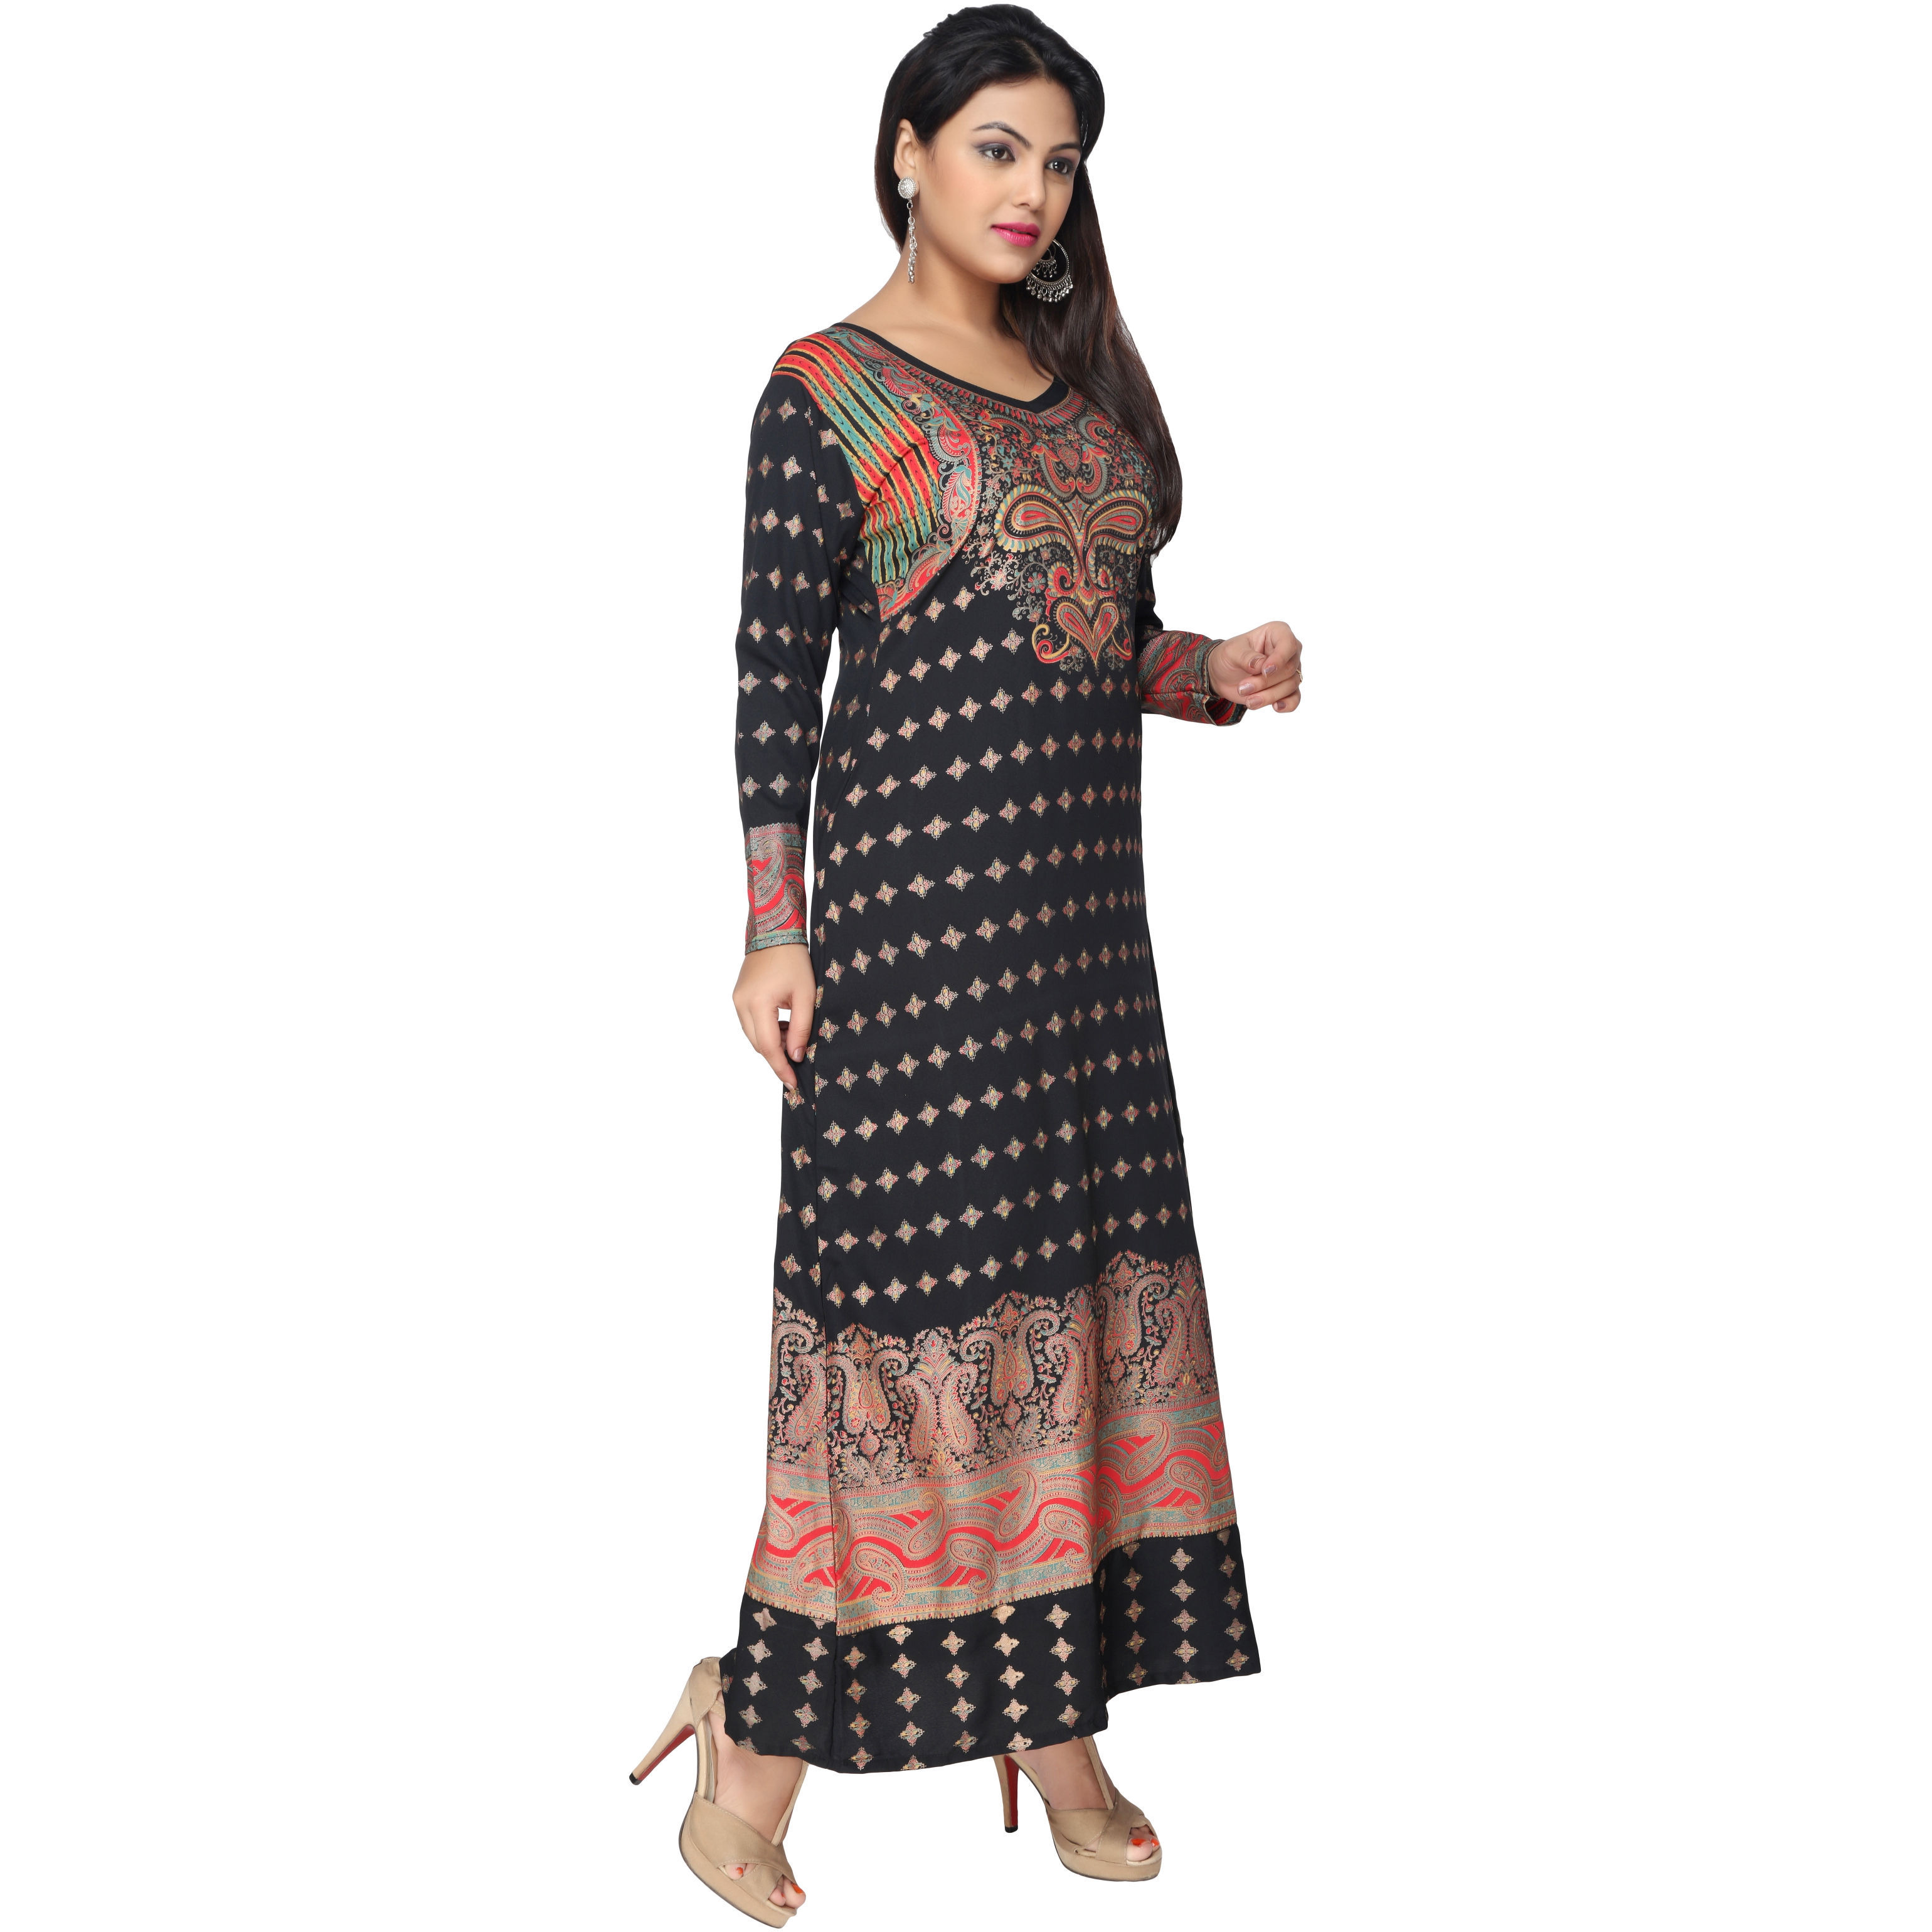 TrendyFashionMall Gold Print Kaftans Maxi Dresses with design in Front and Back (Color:TFMKFT01021-BLACK, Size:48 - 3X-LARGE)